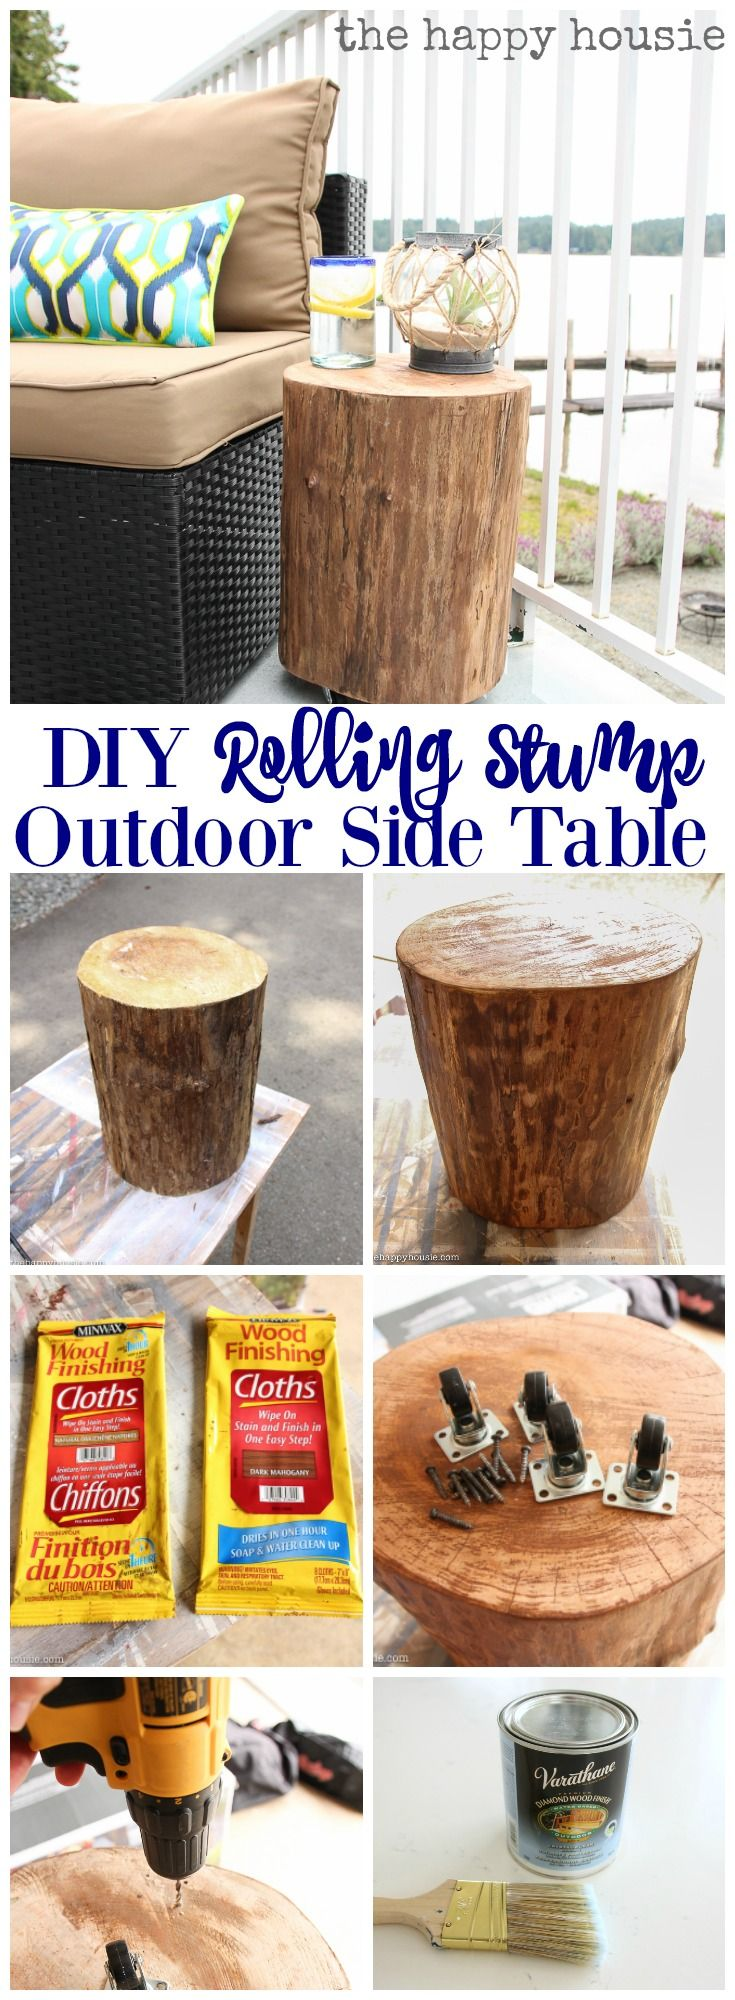 DIY Rolling Stump Outdoor Side Table is a super thrifty and easy outdoor DIY Project